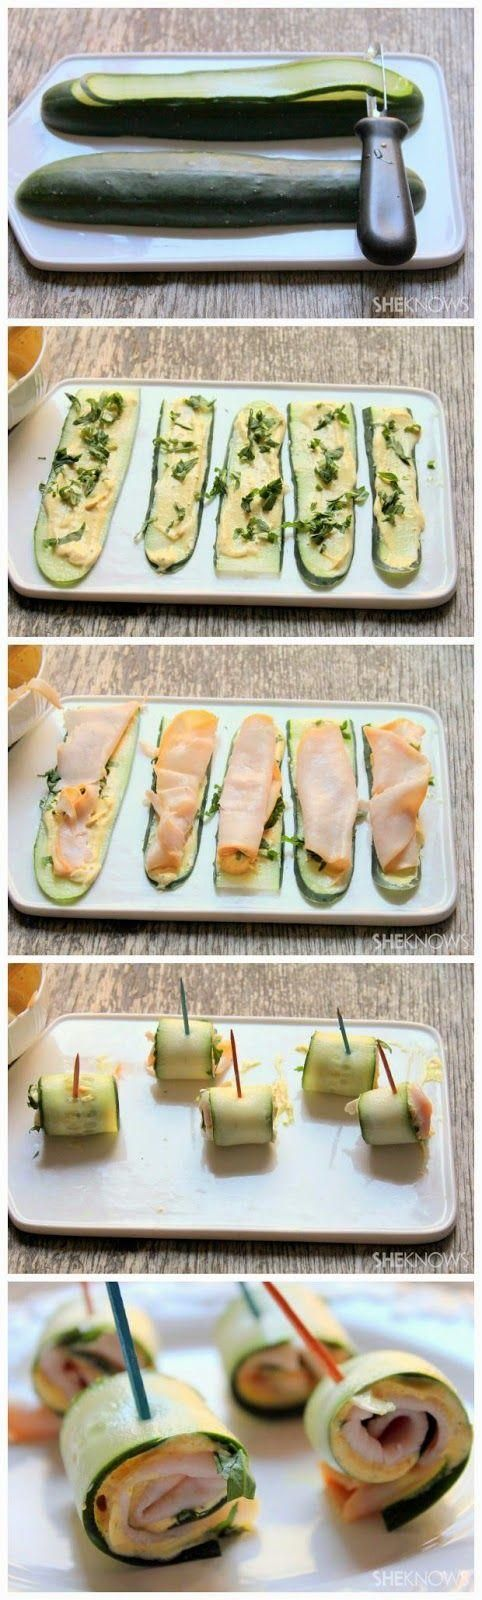 Cucumber roll-ups with Greek yogurt - Love with recipe